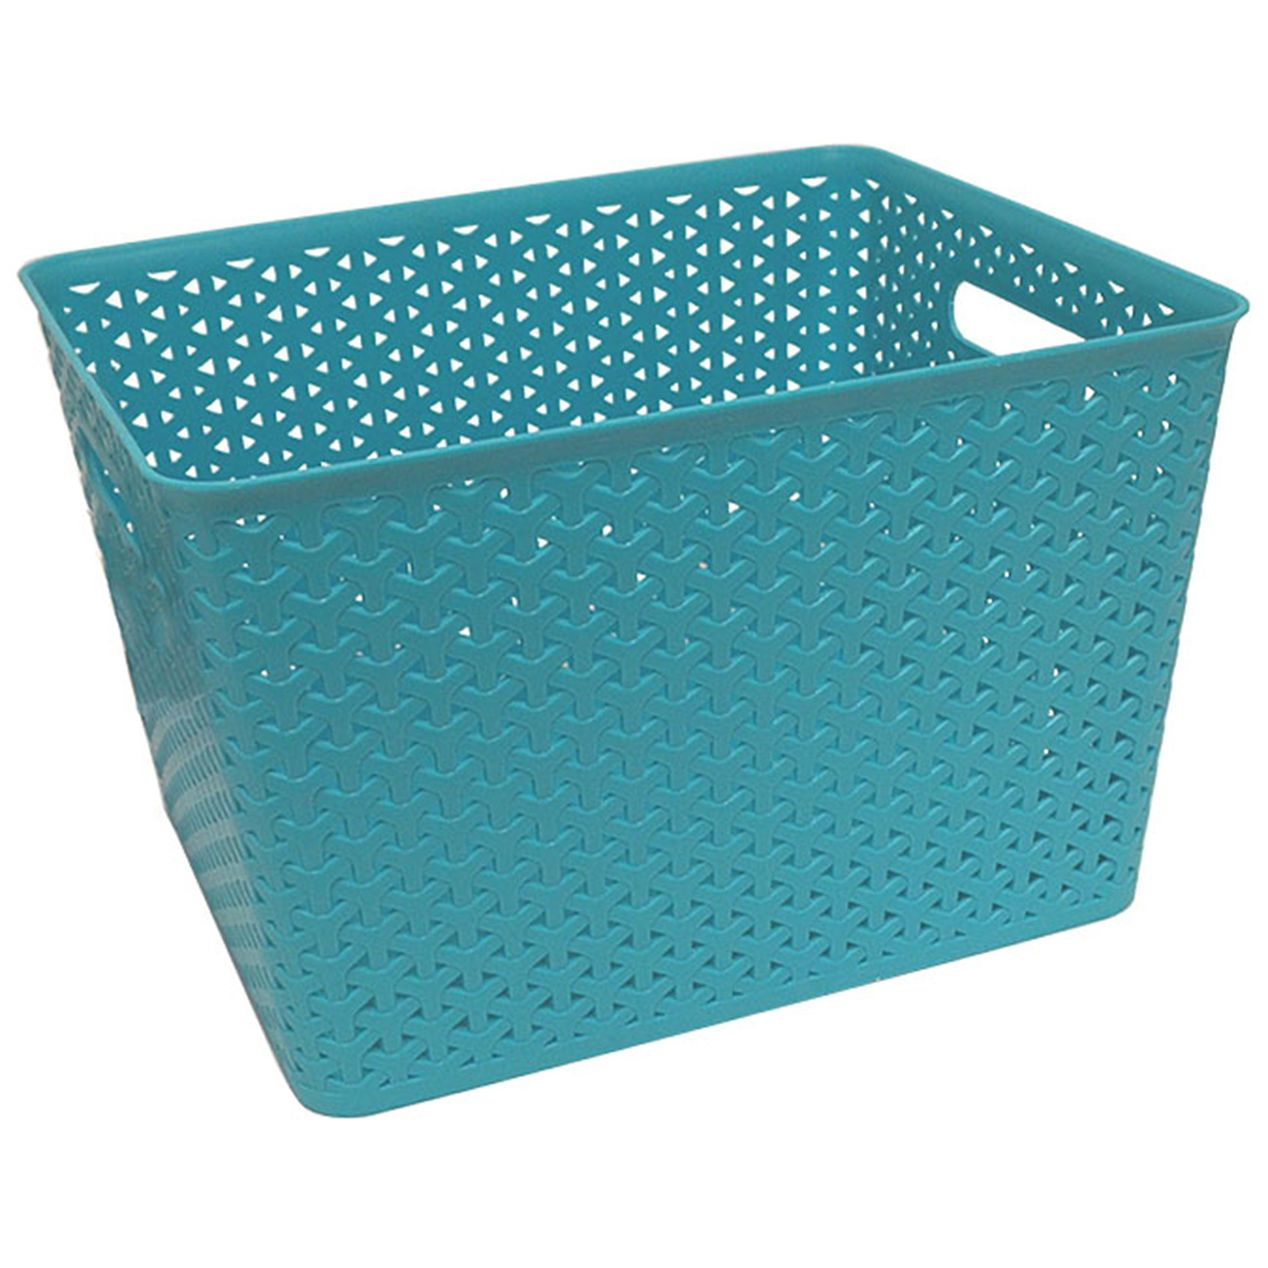 1c98082736 Turquoise Plastic Weave Basket- 14 x 11 x 9-in